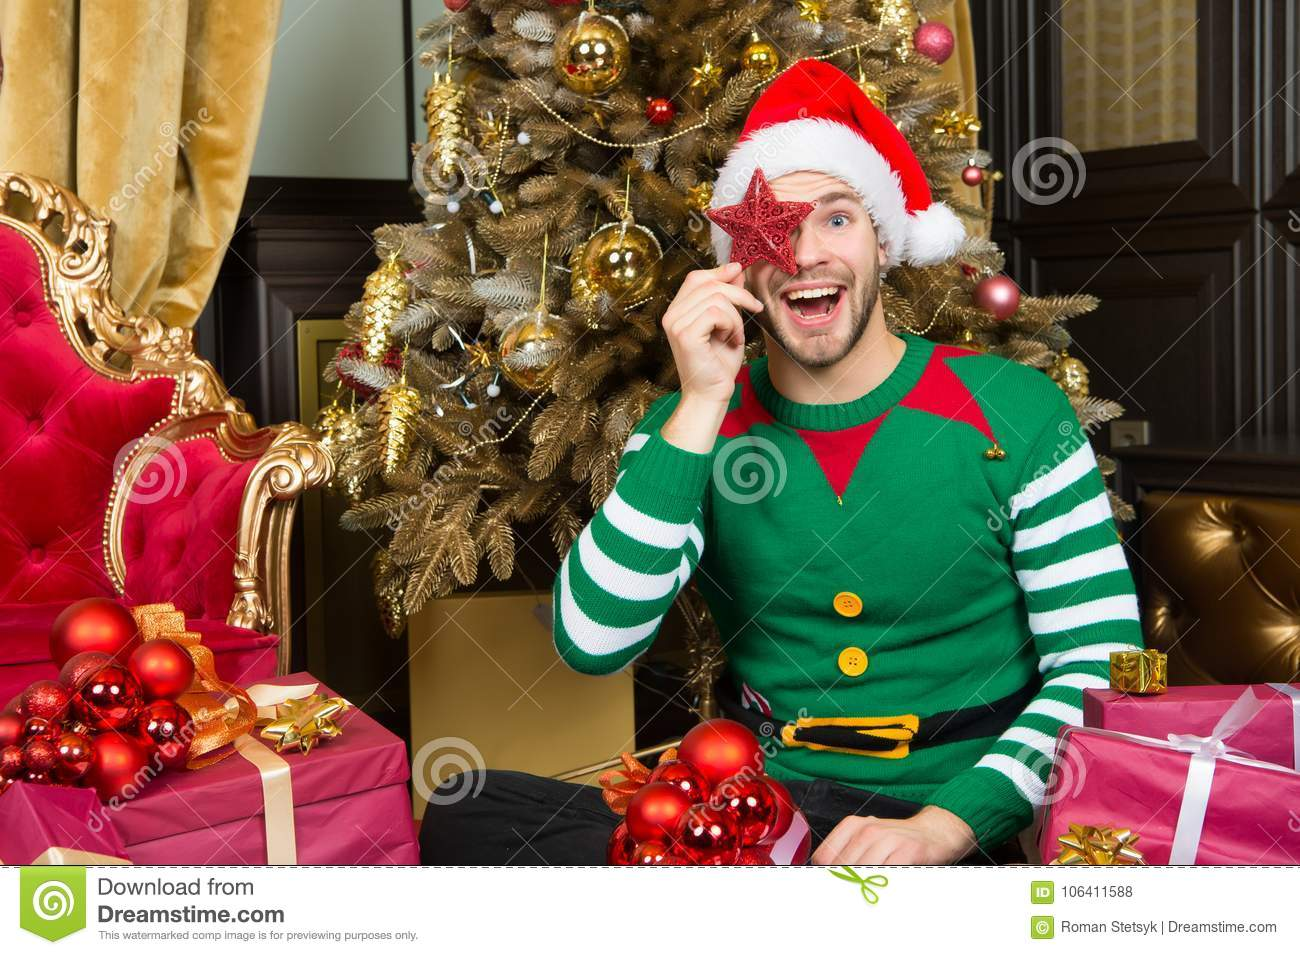 Download comp  sc 1 st  Dreamstime.com & Man Santa Cover Smiling Face With Star Decoration Stock Photo ...